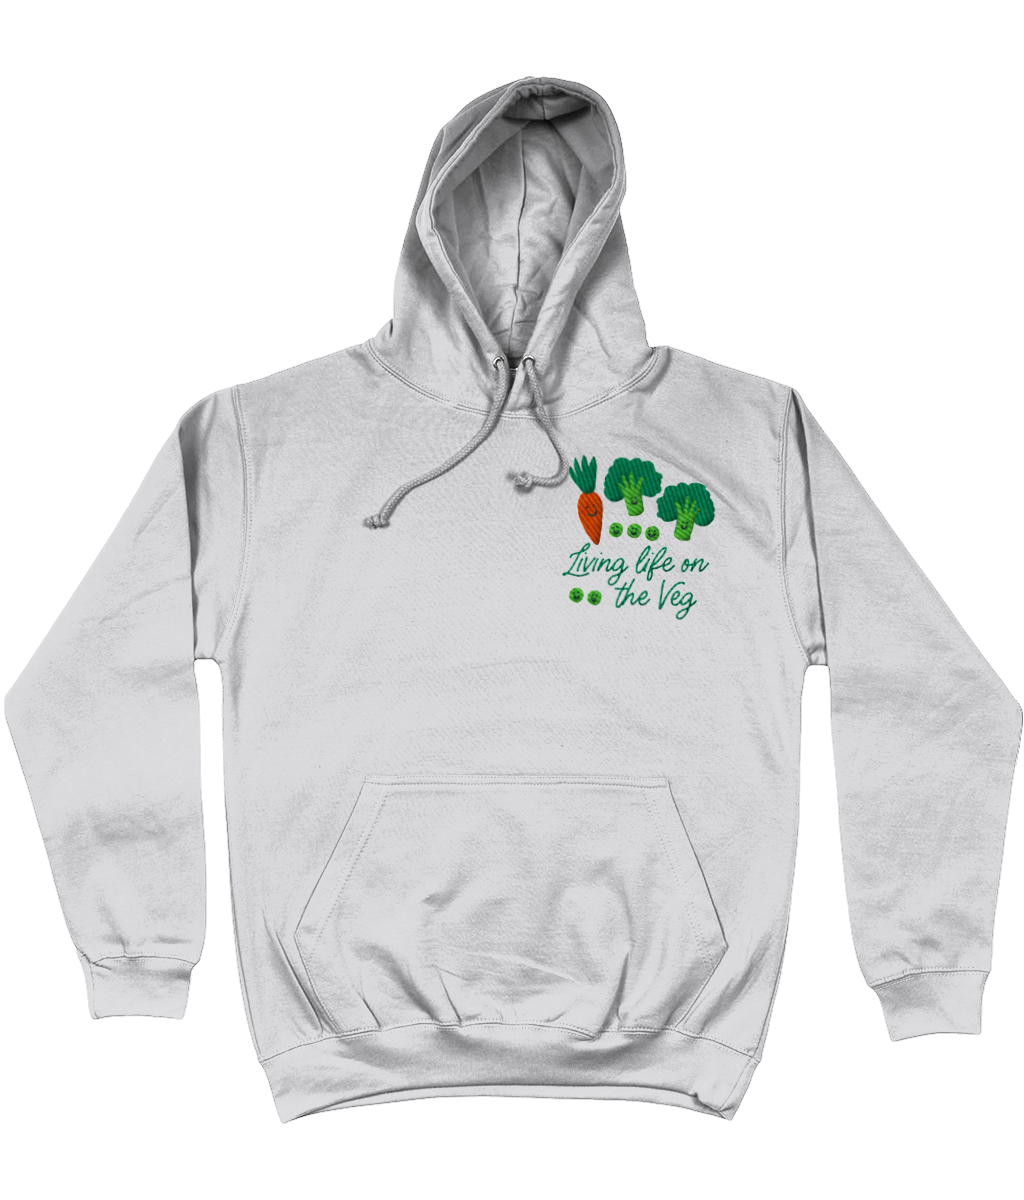 Living life on the Veg Embroidered Hoodie